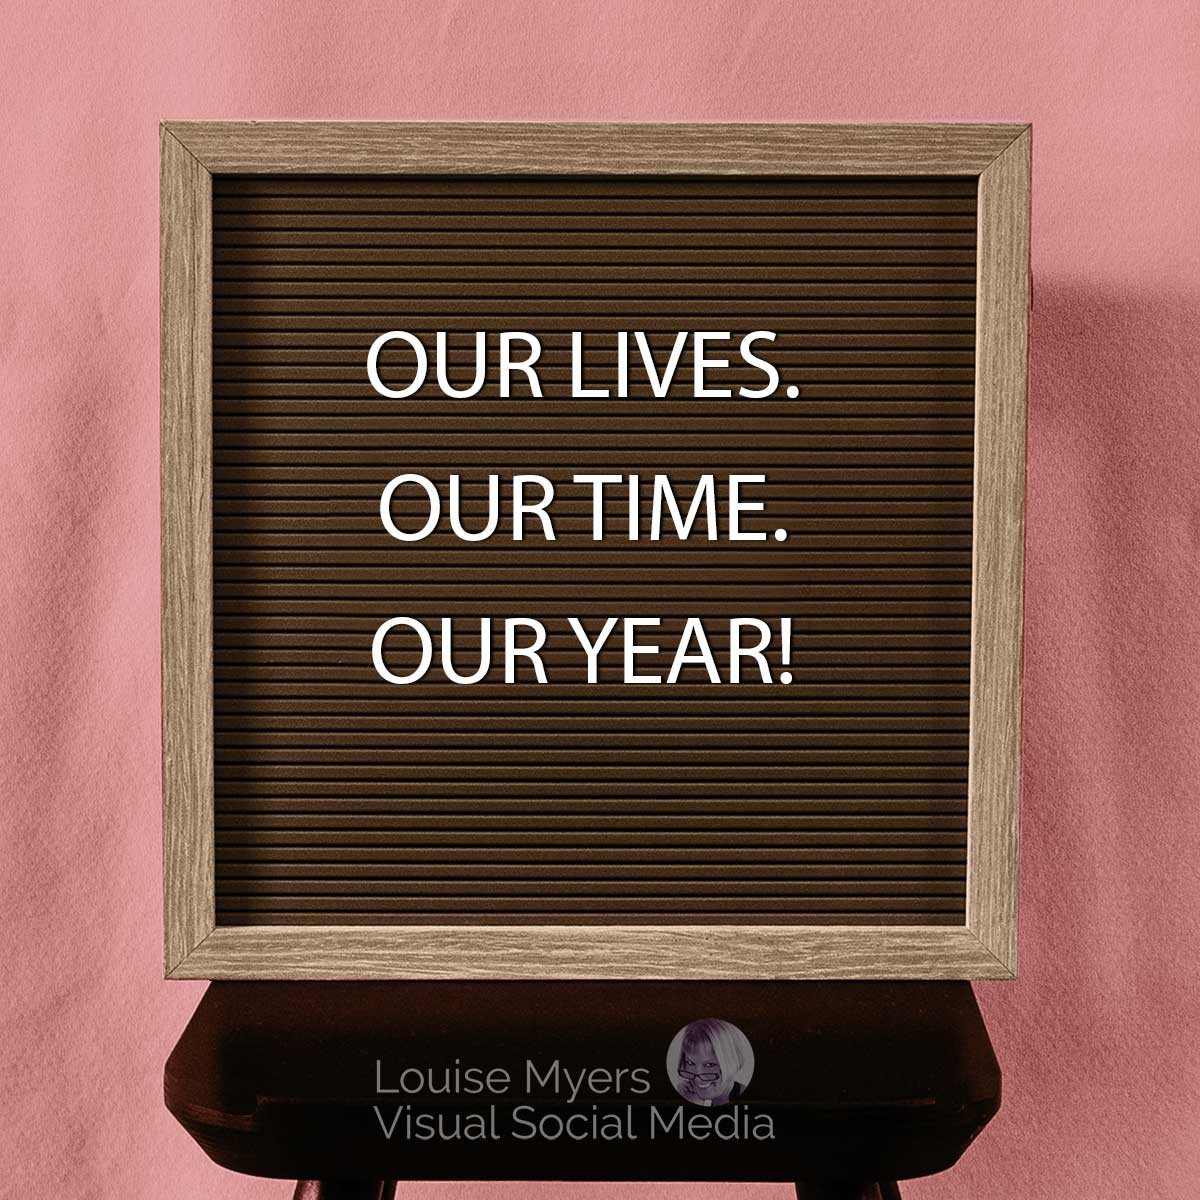 photo of letter board with letter spelling our lives our time our year.